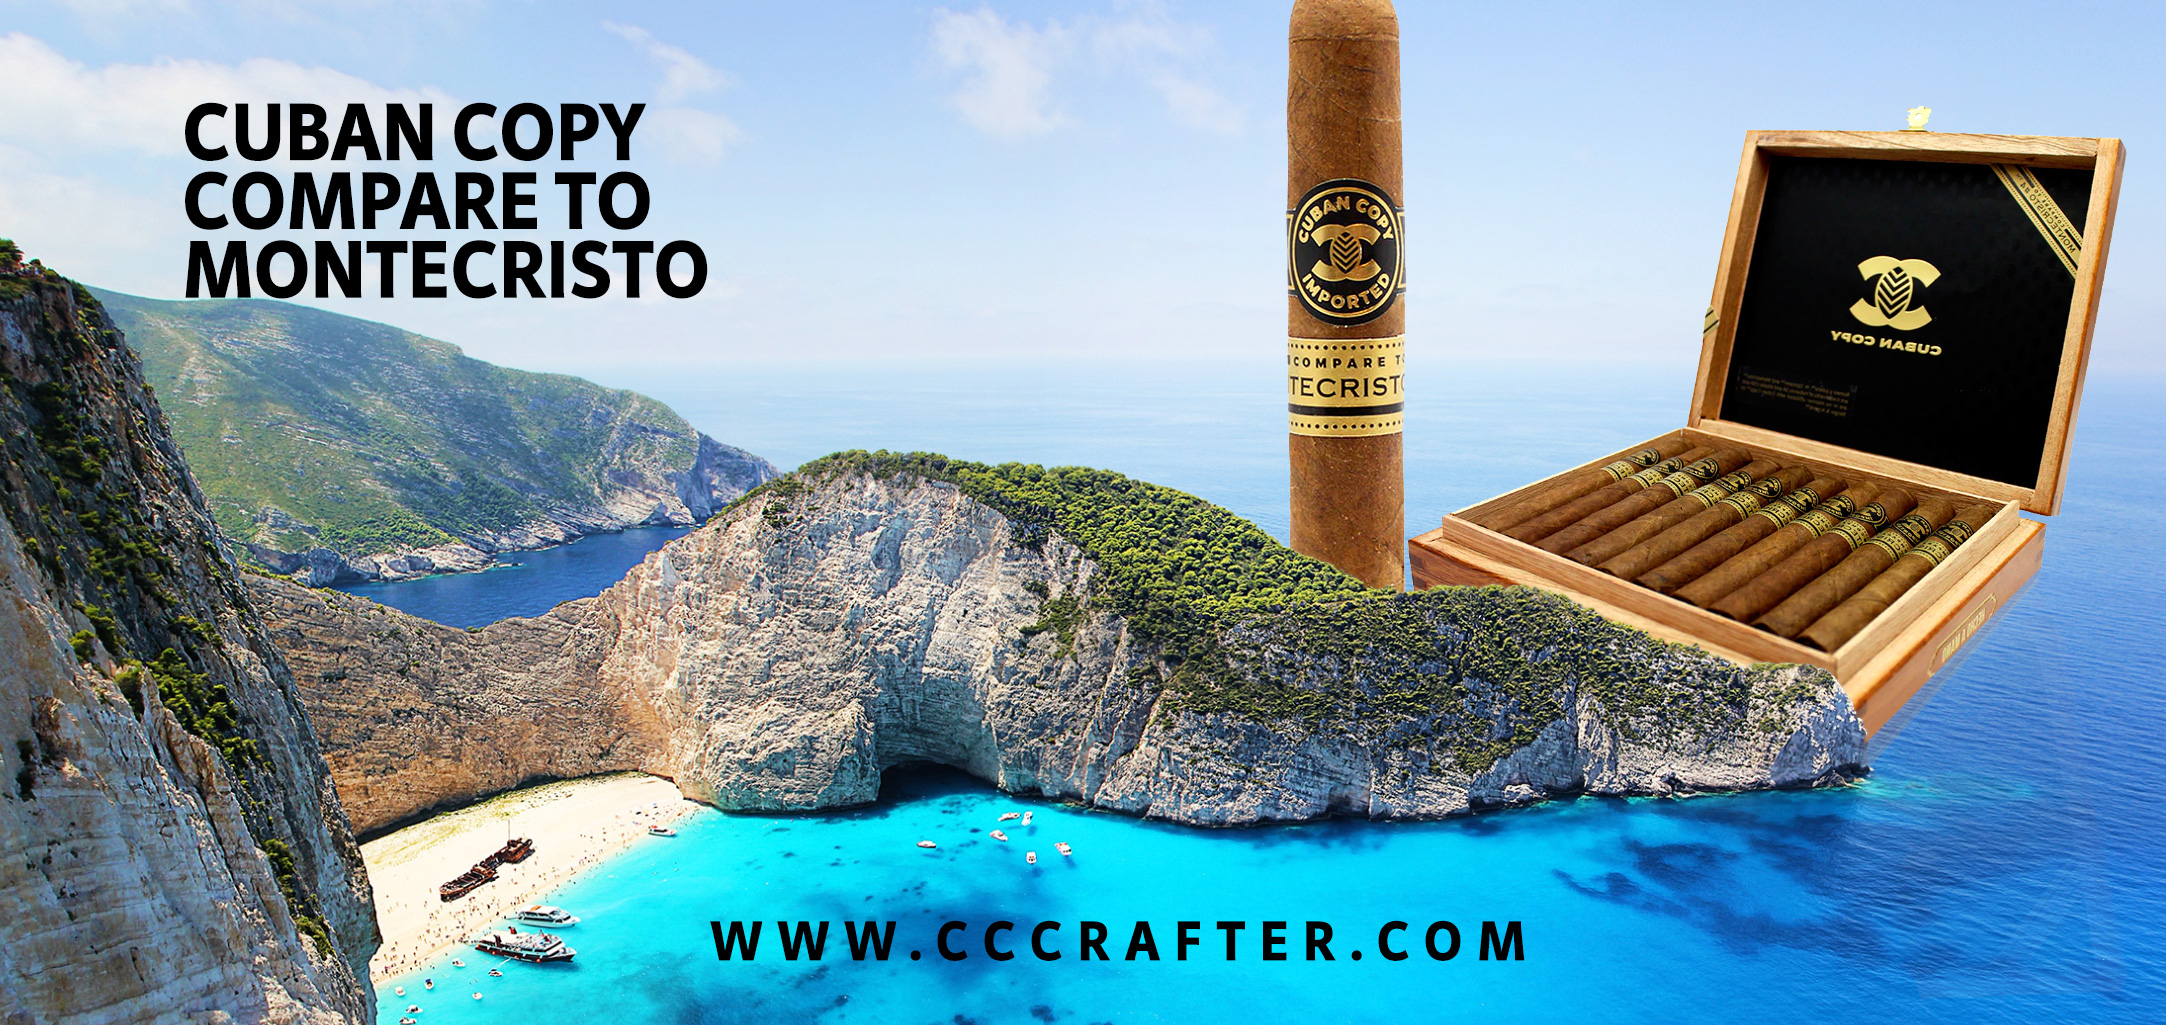 -cuban-copy-compare-to-montecristo.jpg